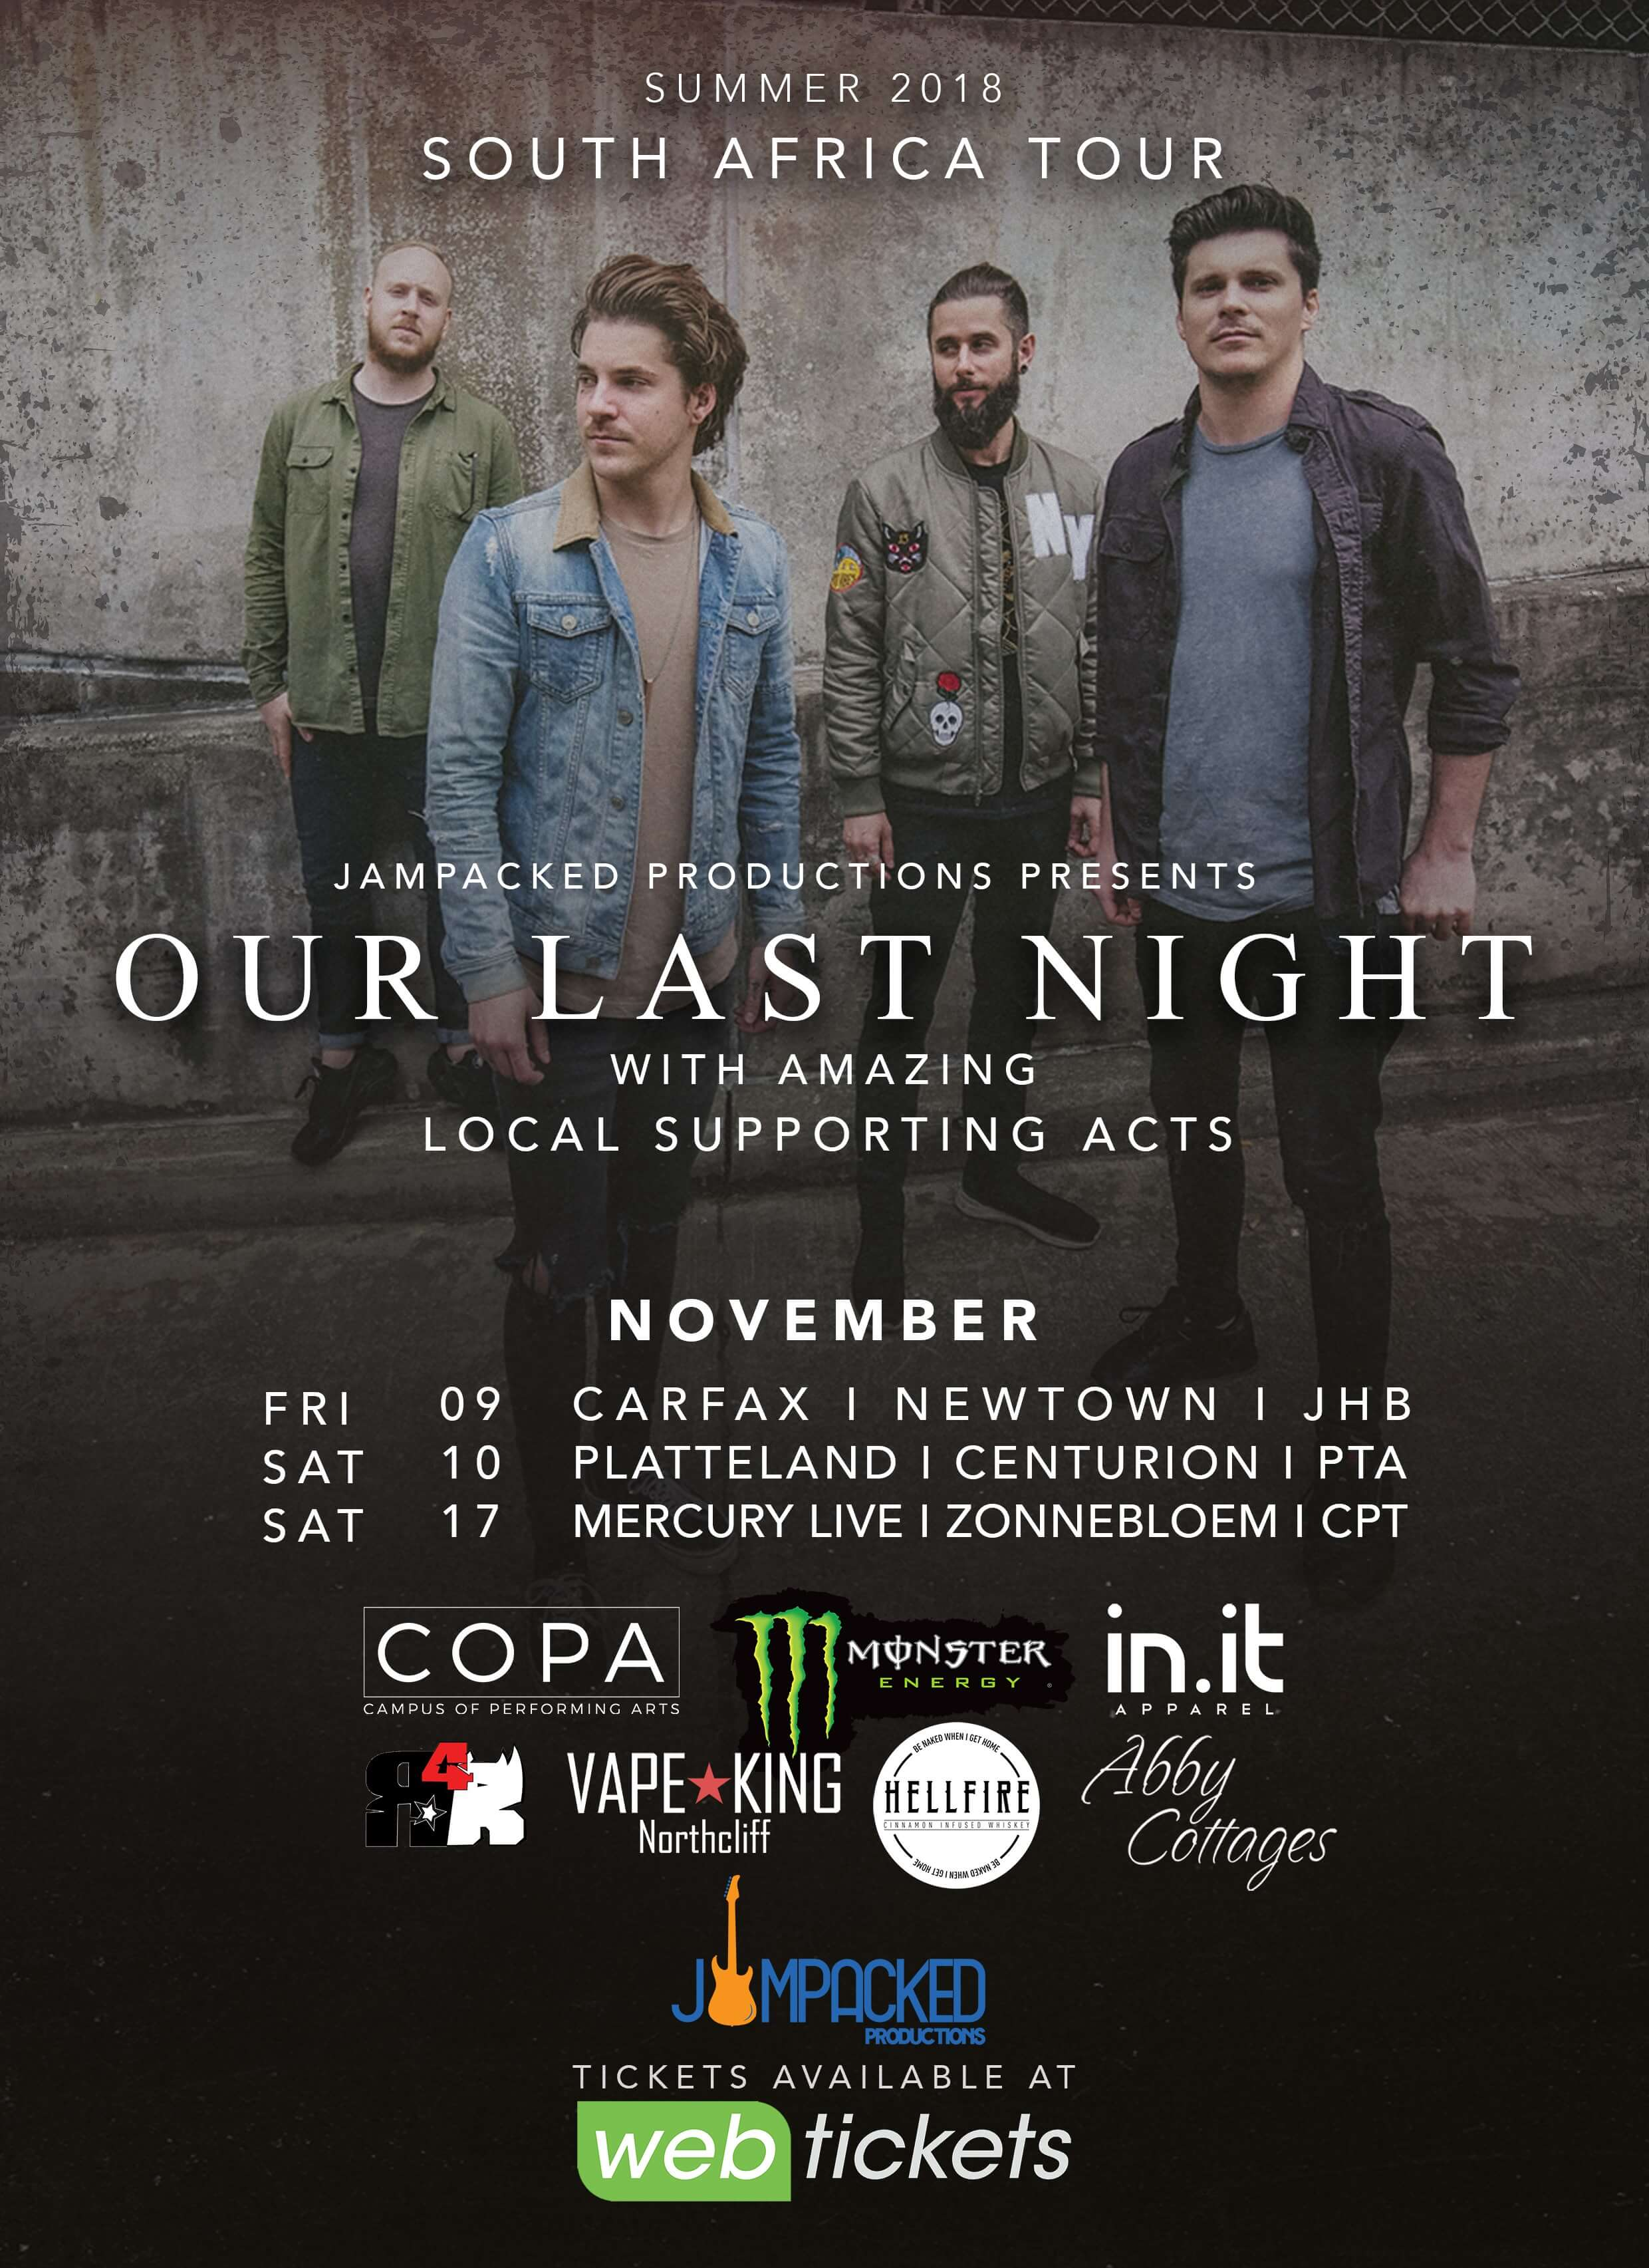 Our Last Night Announce Their Return To South Africa Plug Music Agency